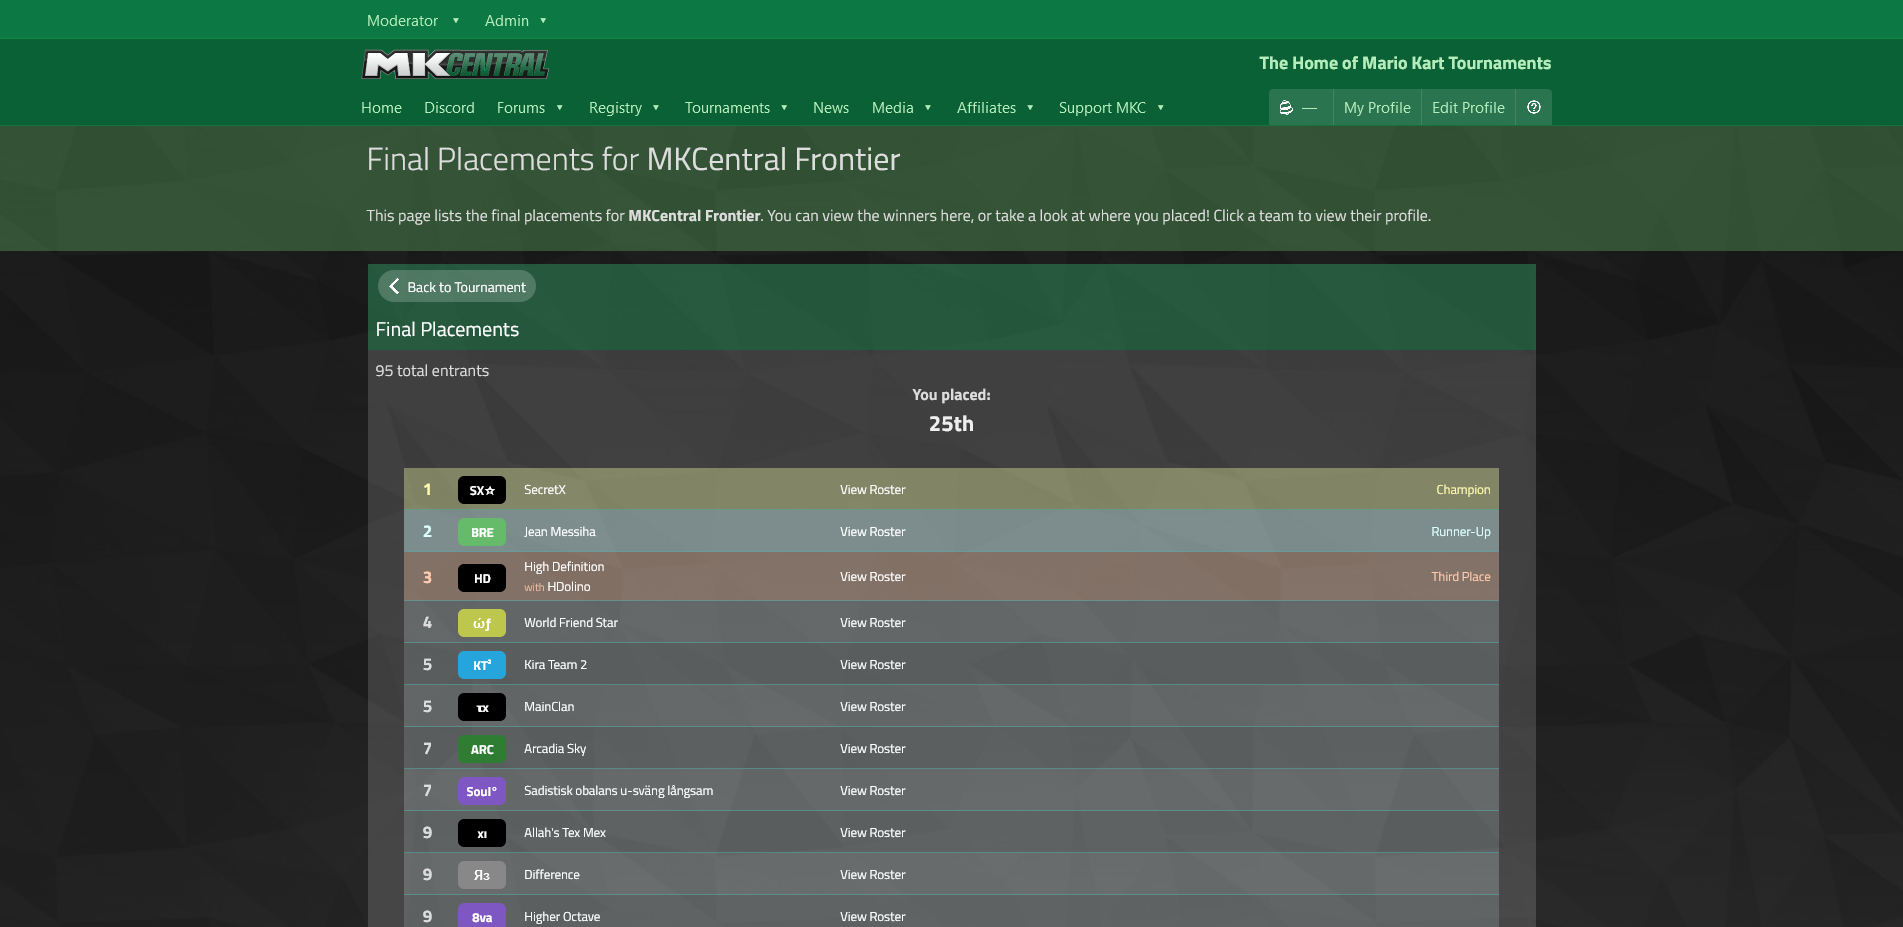 Screenshot-2021-09-01-at-22-33-37-Mario-Kart-Central-Tournaments-MKCentral-Frontier-Final-Placements.png